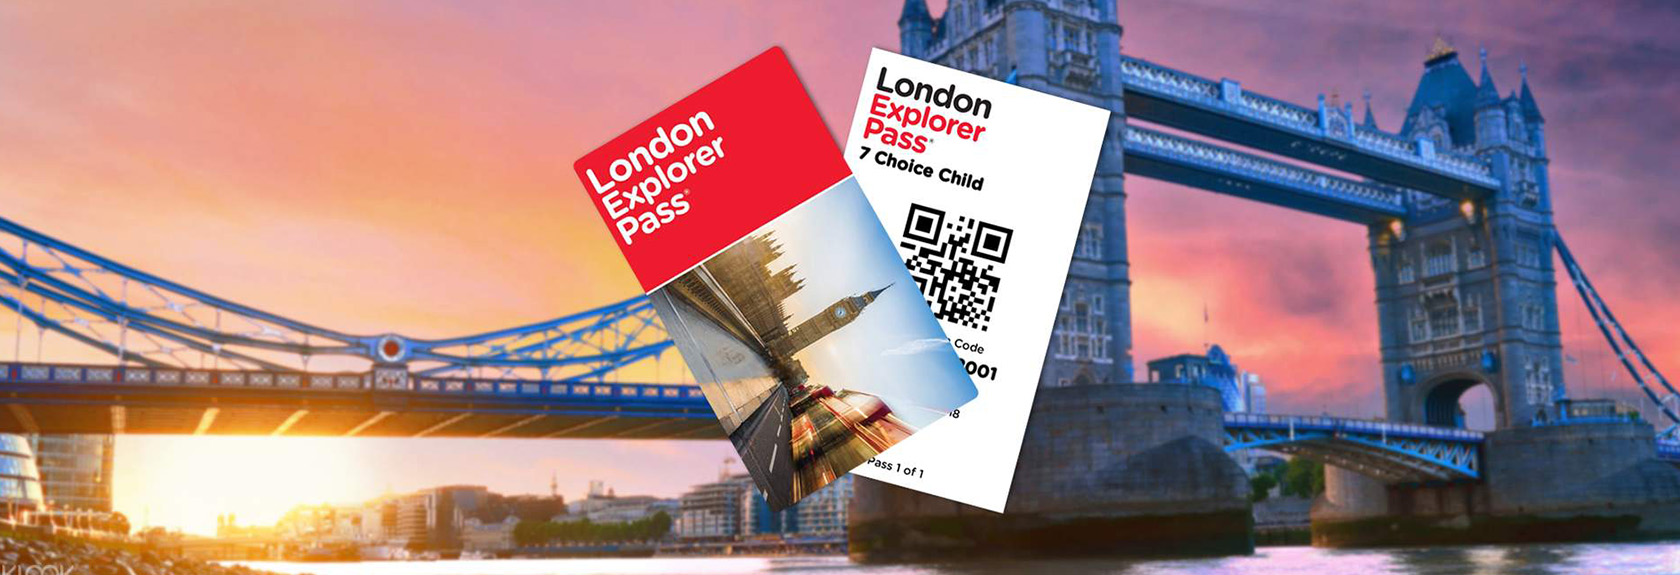 London Explorer Pass – tot 40% korting op attracties